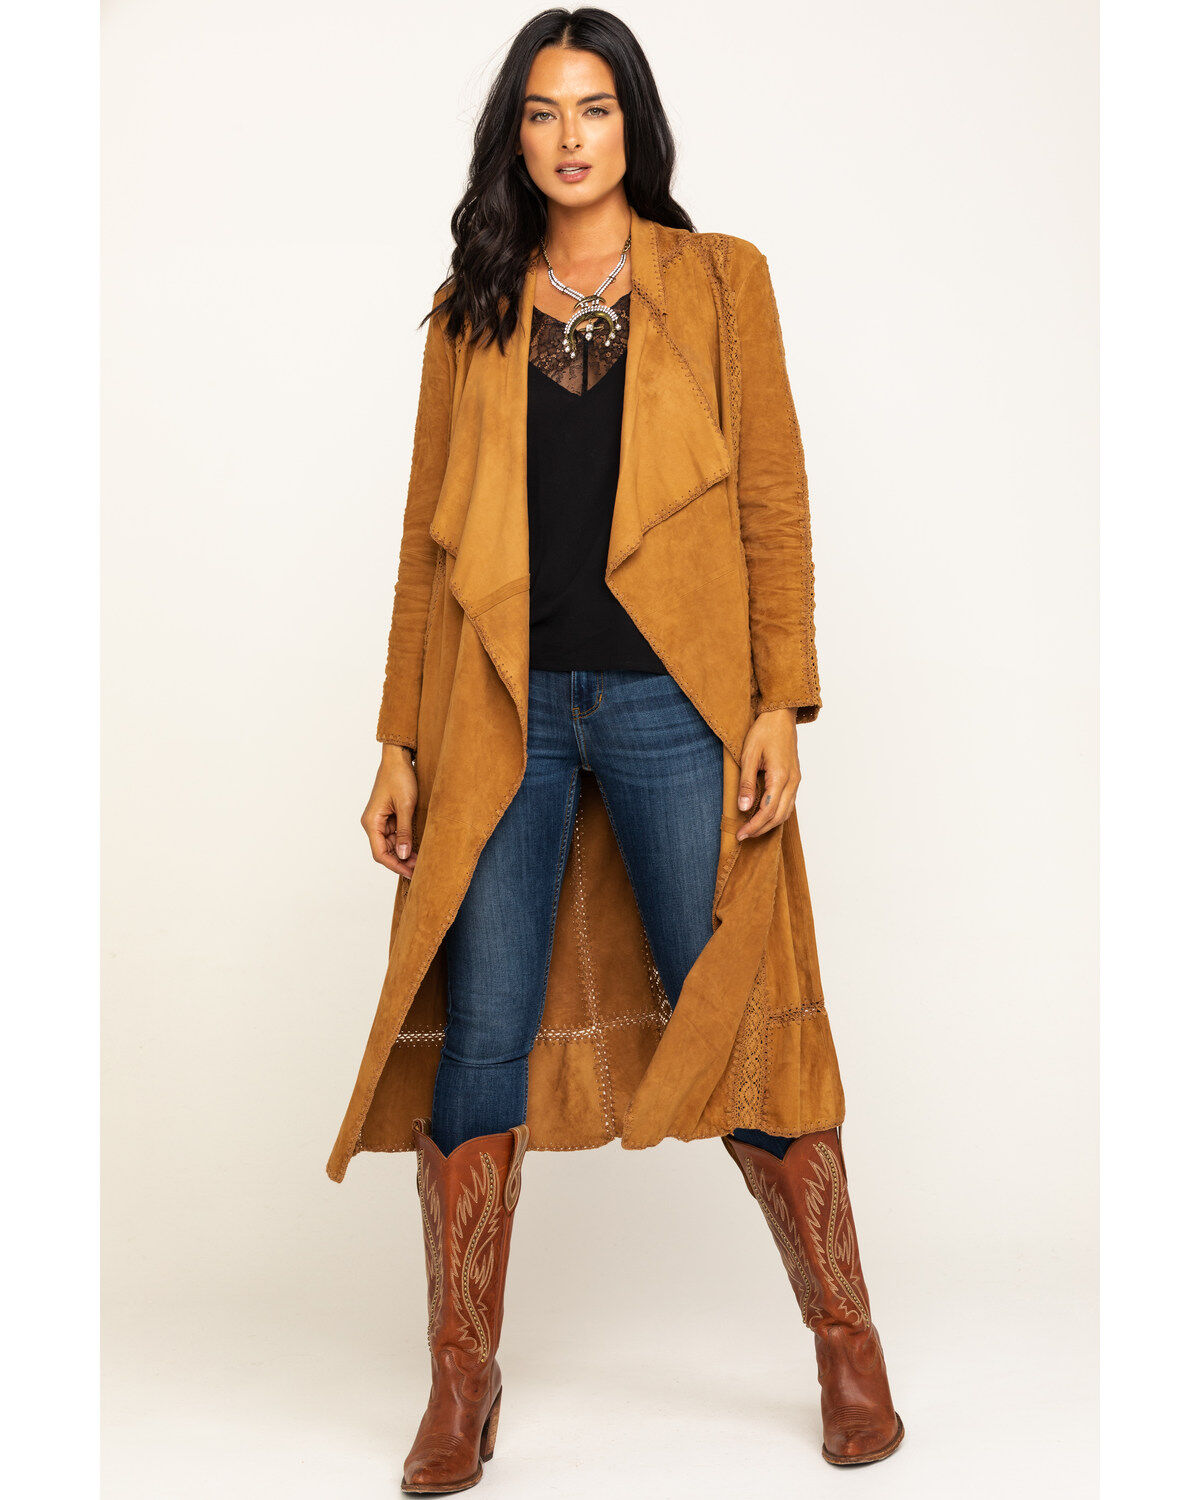 BE VOCAL WESTERN CAMEL FAUX LEATHER LACE CARDIGAN DUSTER JACKET S M L XL USA